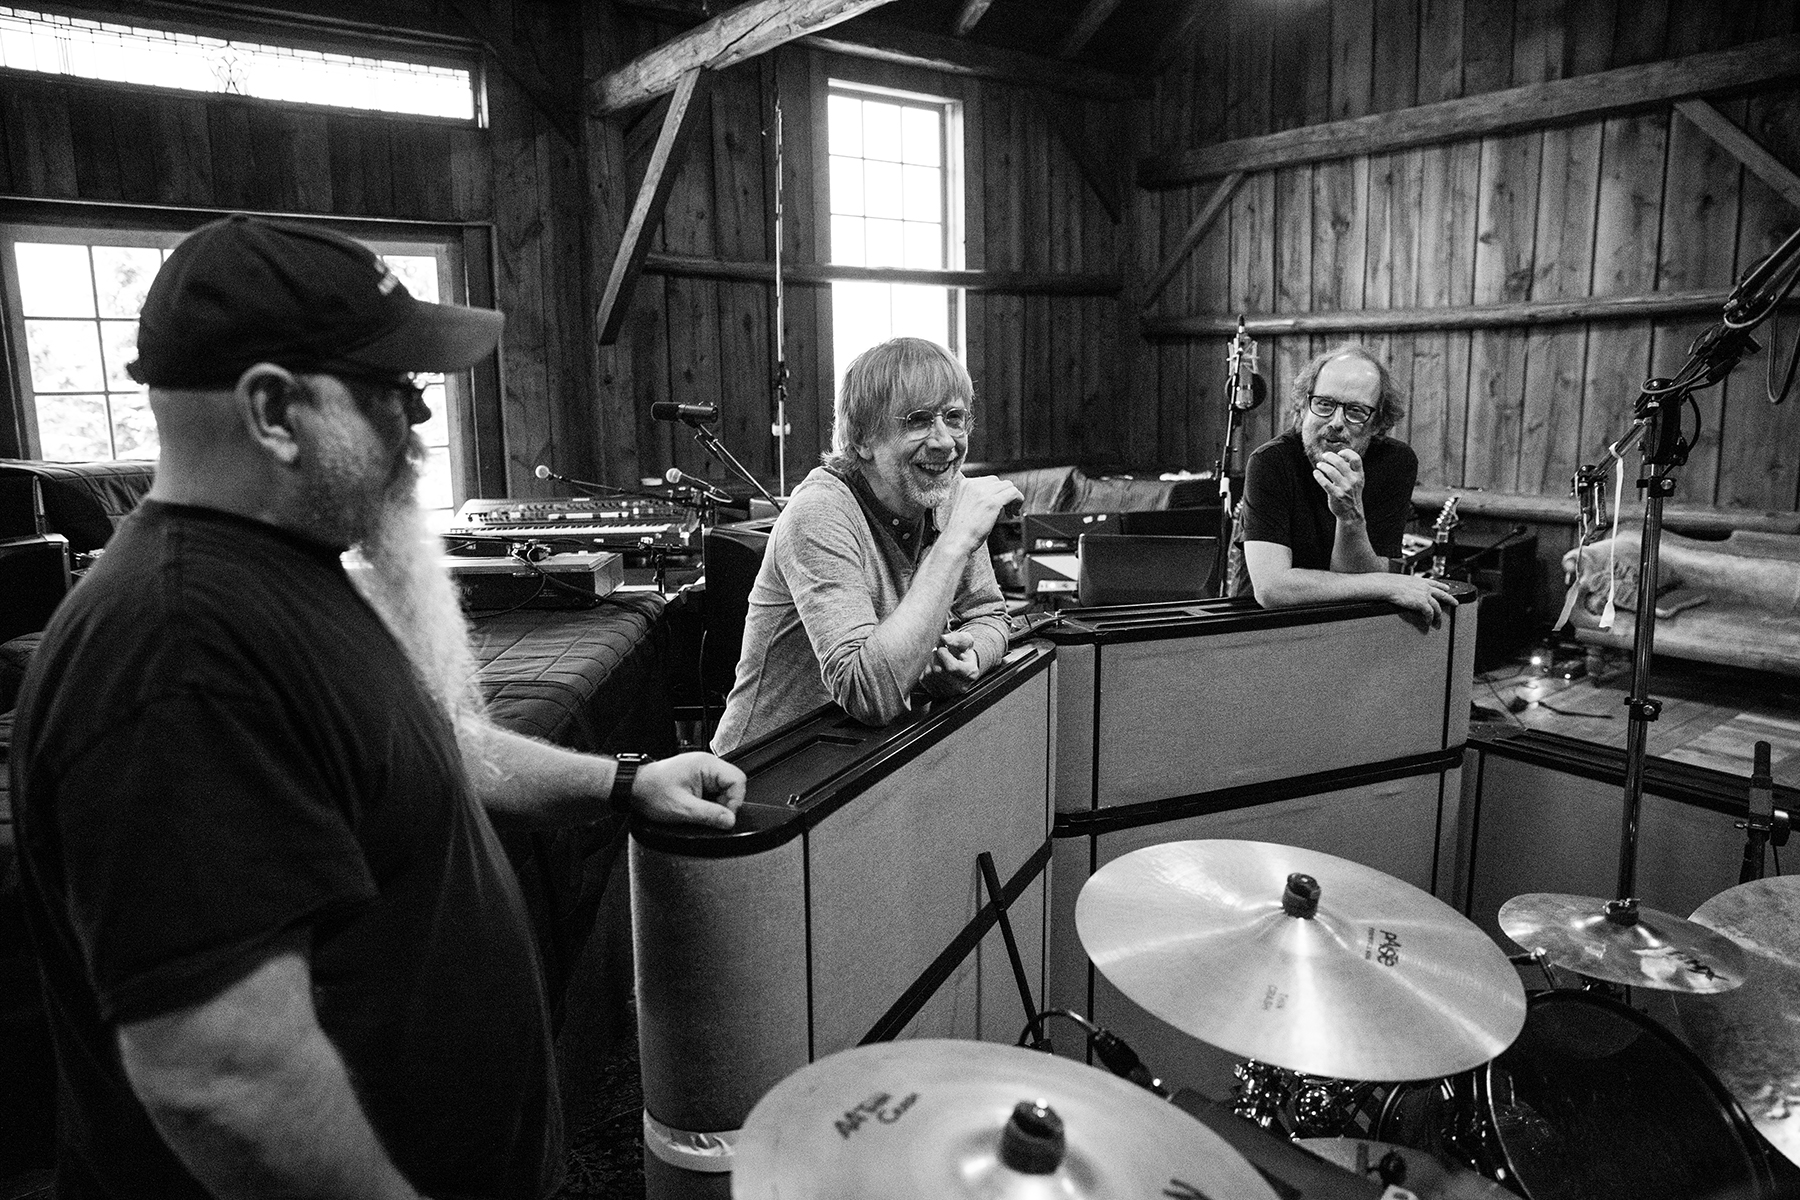 Vance Powell, Trey Anastasio and Page McConnell in the barn in November.